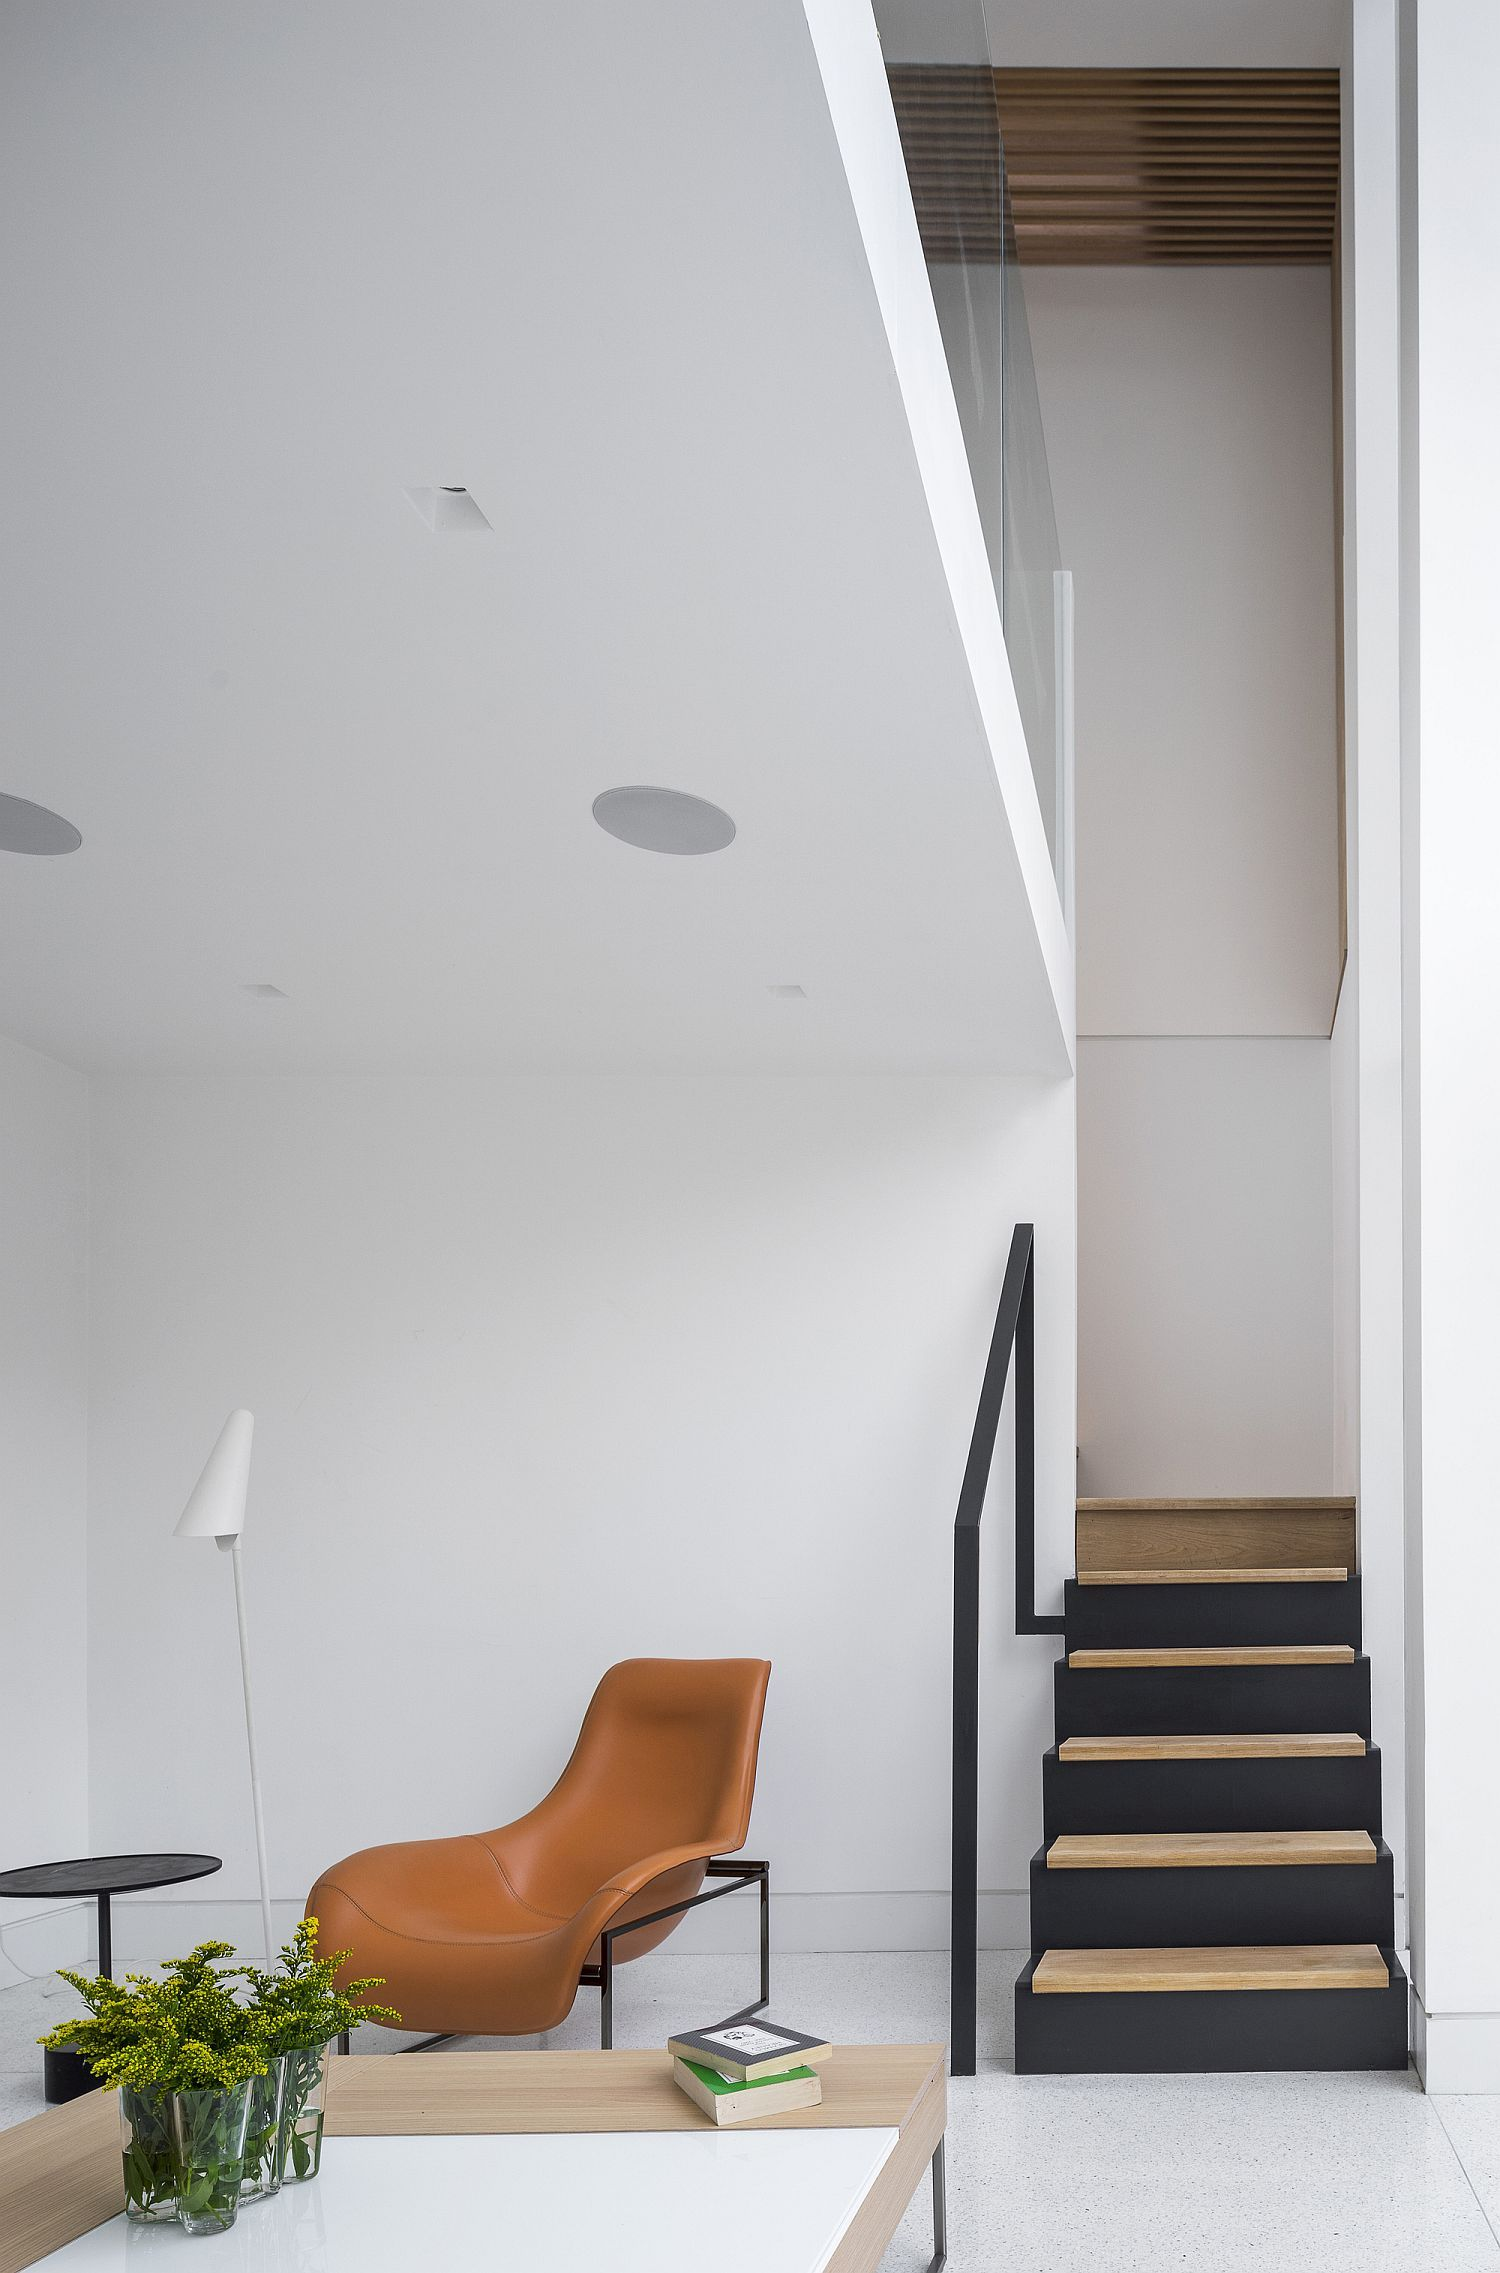 Giving the old Victirian terrace house a posh, modern makeover